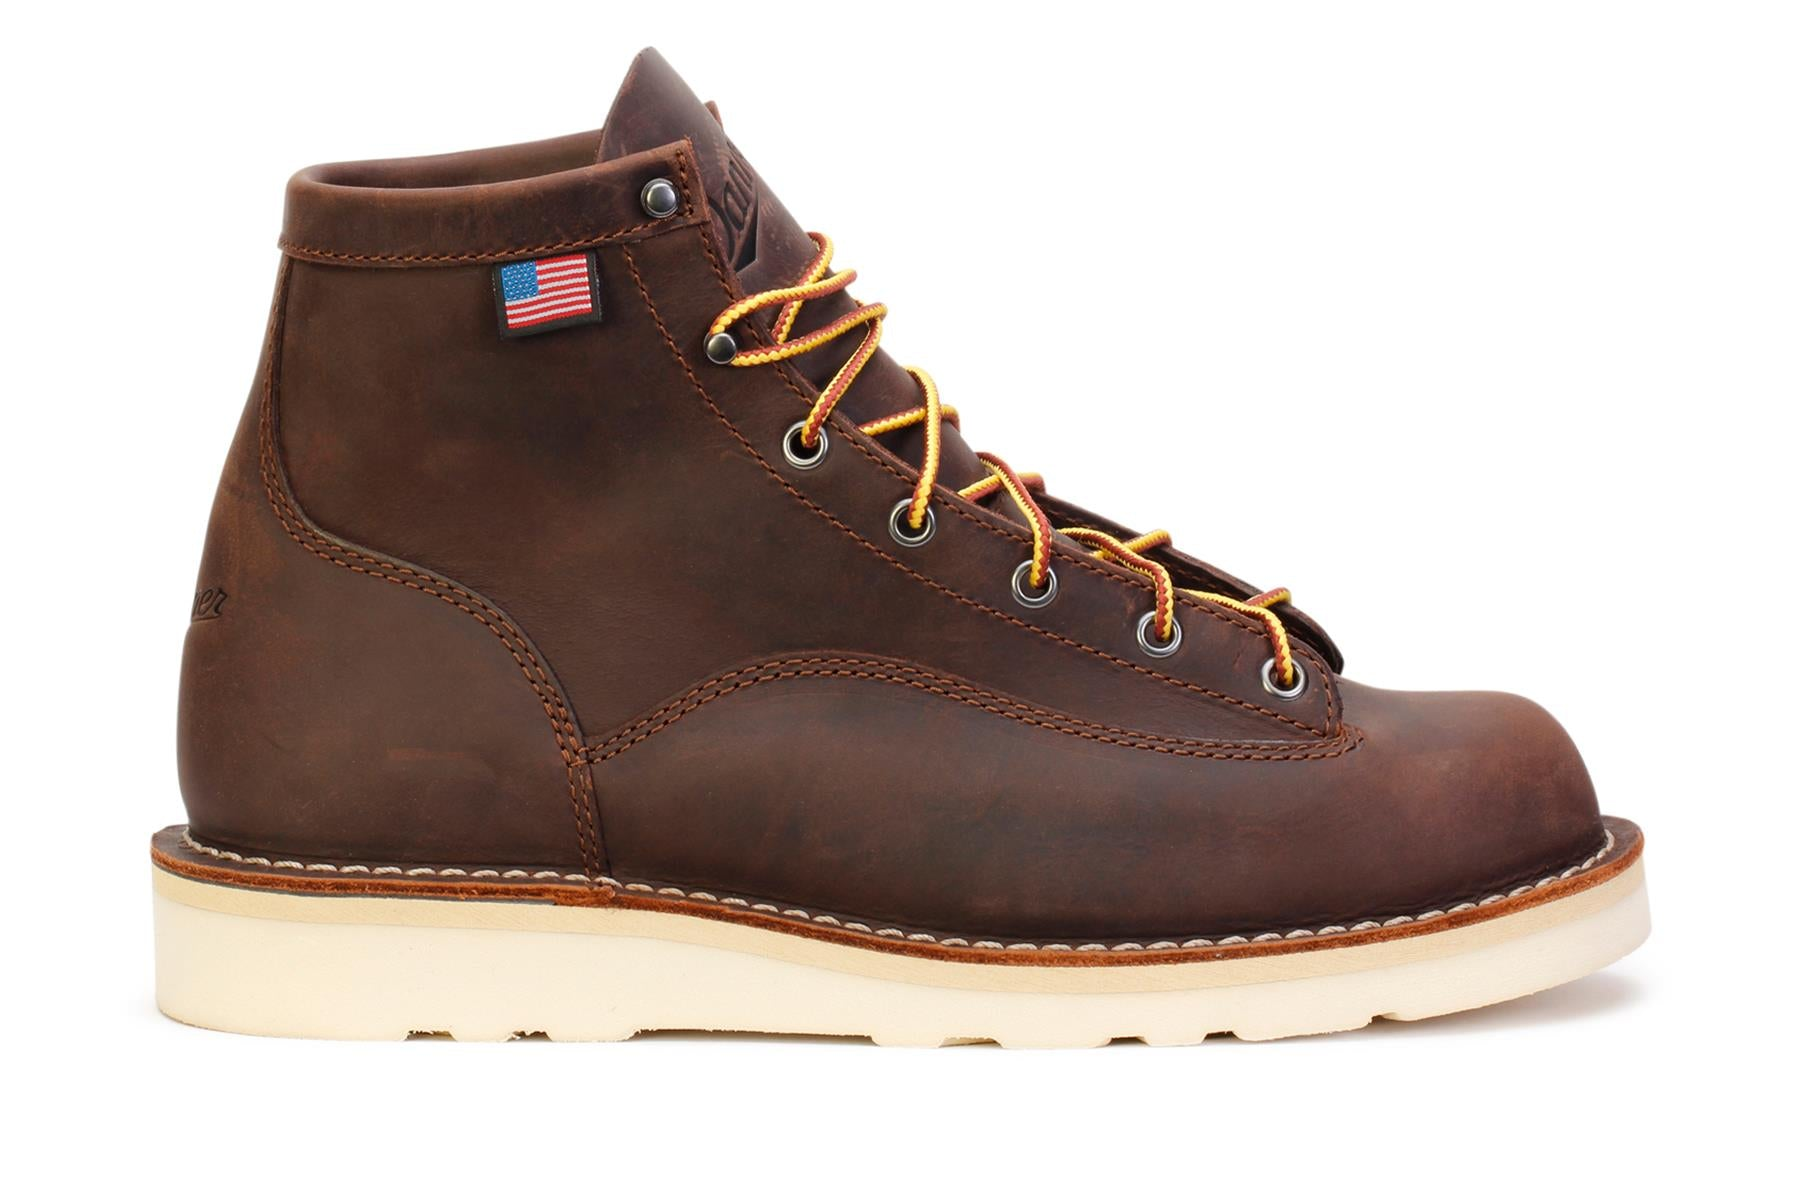 danner-mens-work-boots-bull-run-brown-cristy-leather-15552-main